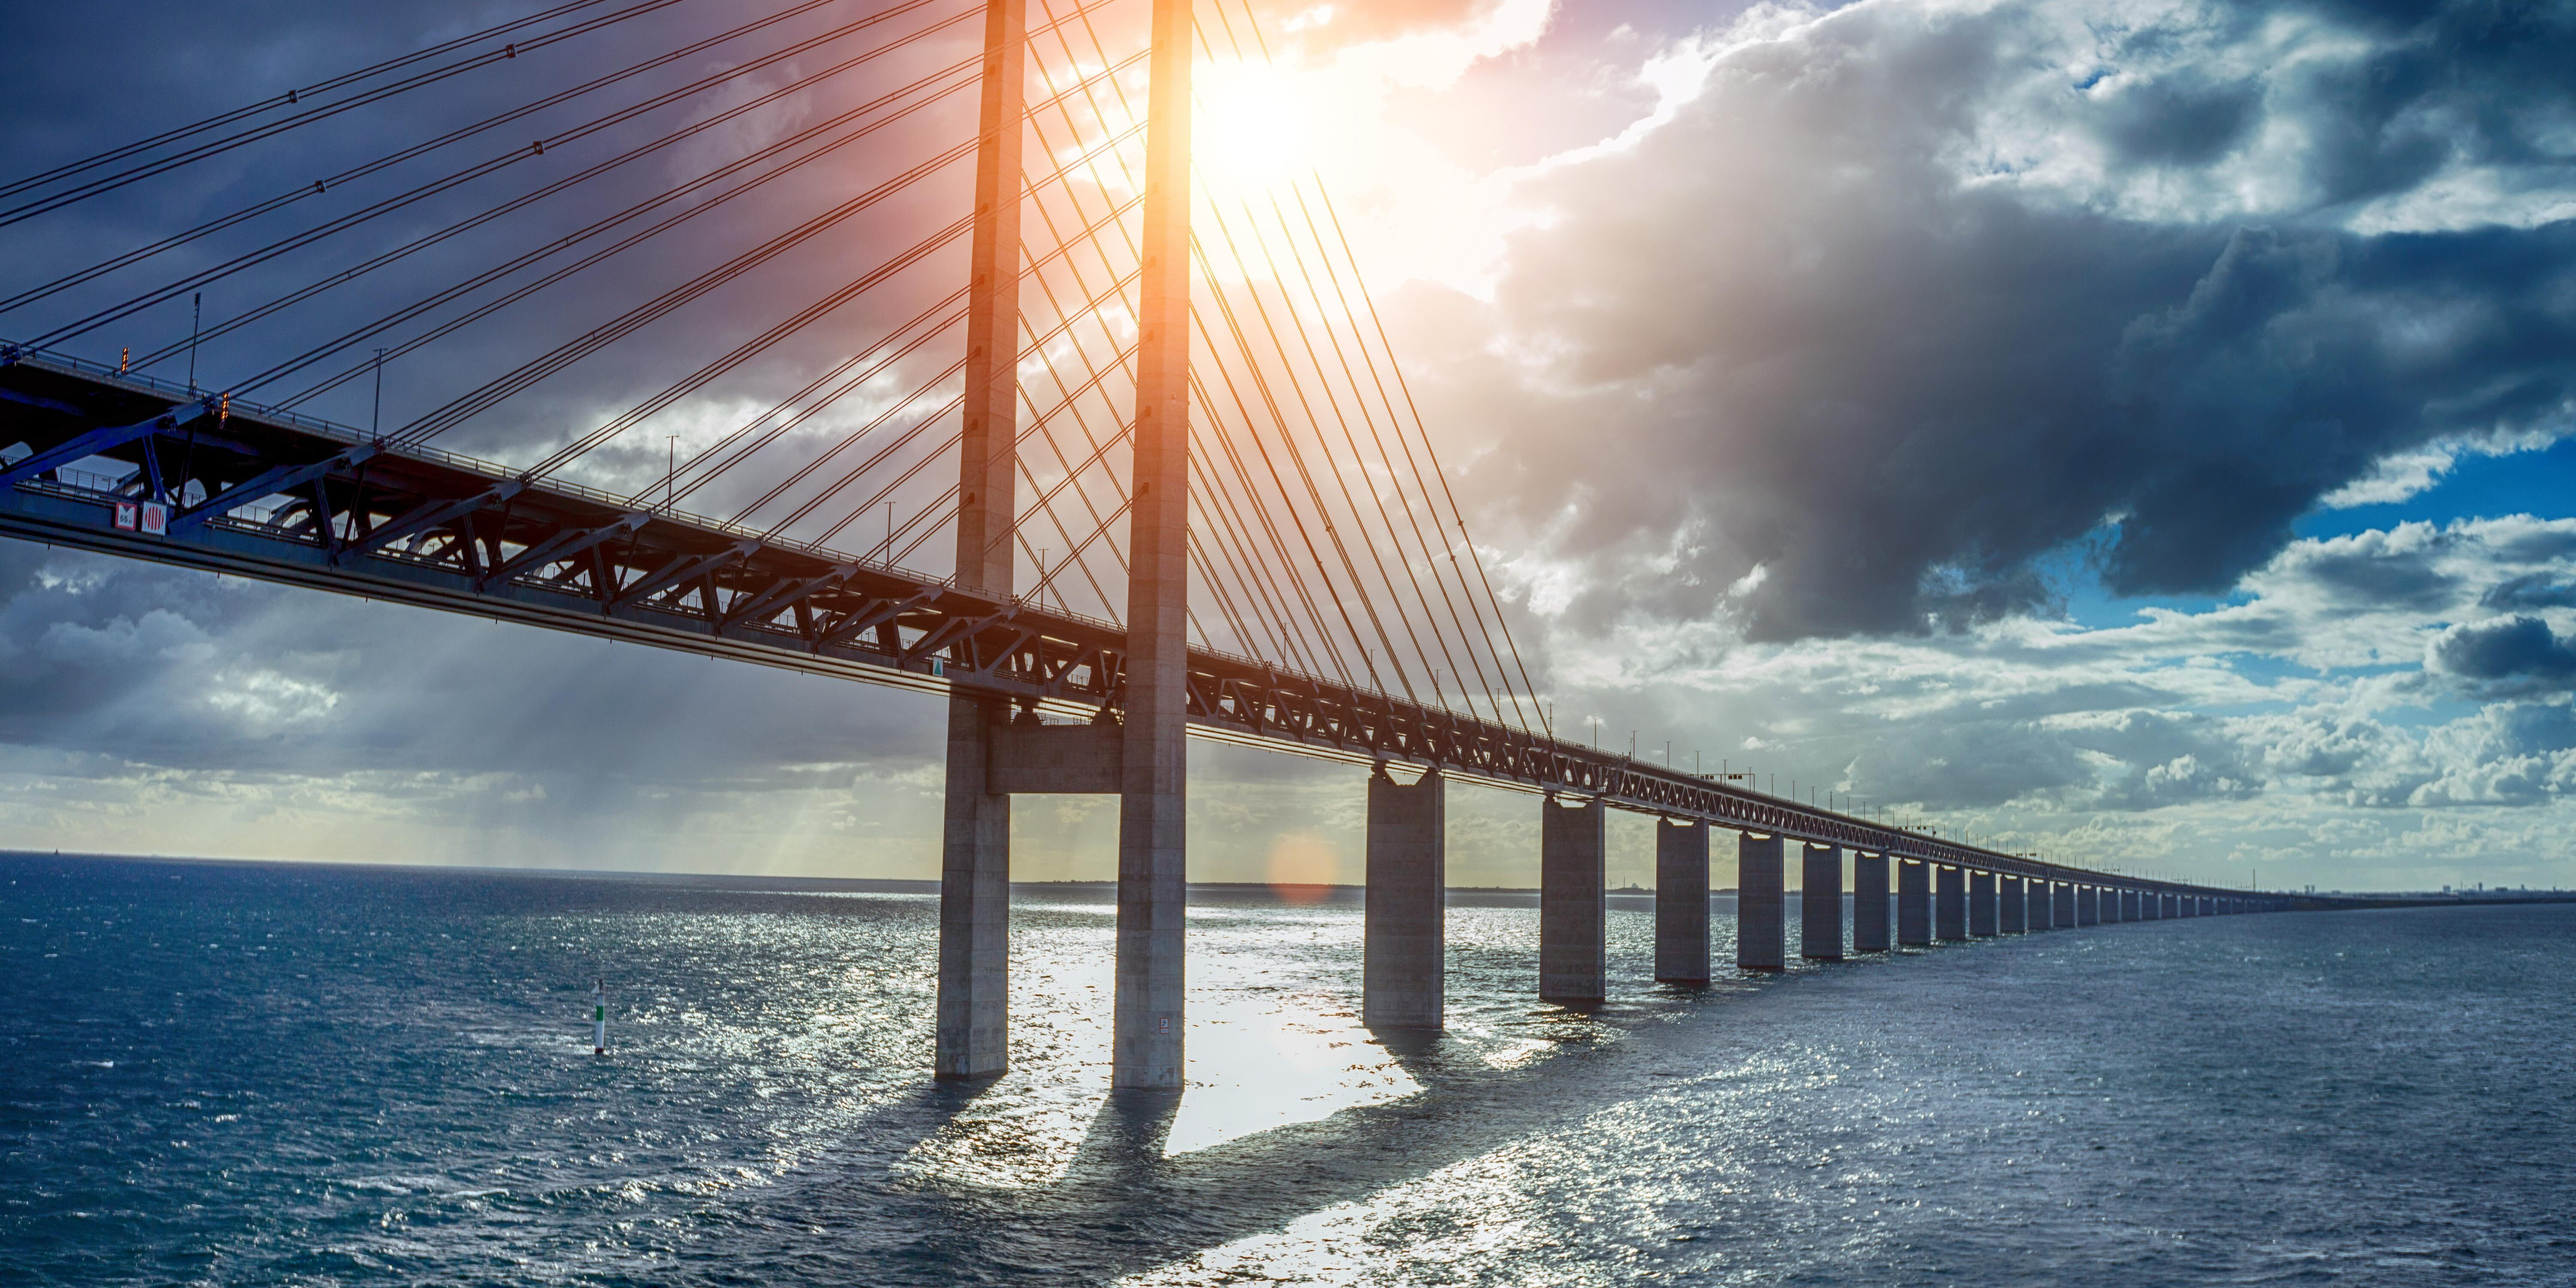 The Oresund Bridge is crossed on any day trip to Sweden